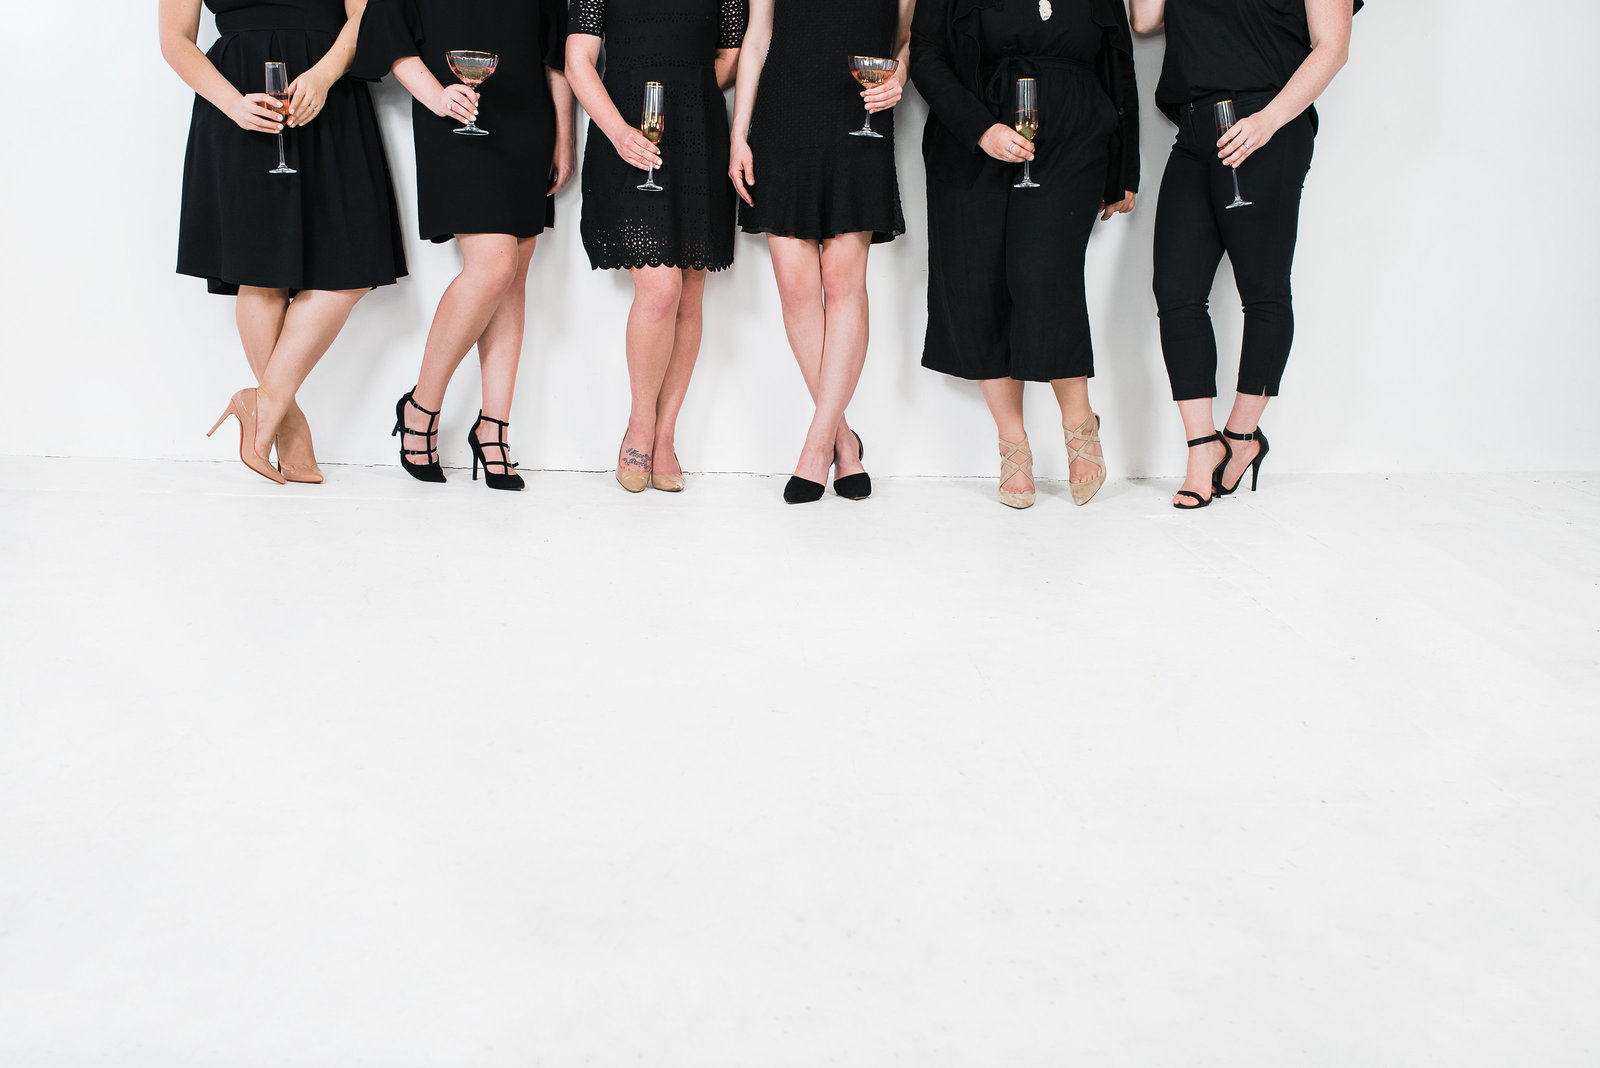 Branding photo shoot of ladies in little black dresses with great heels